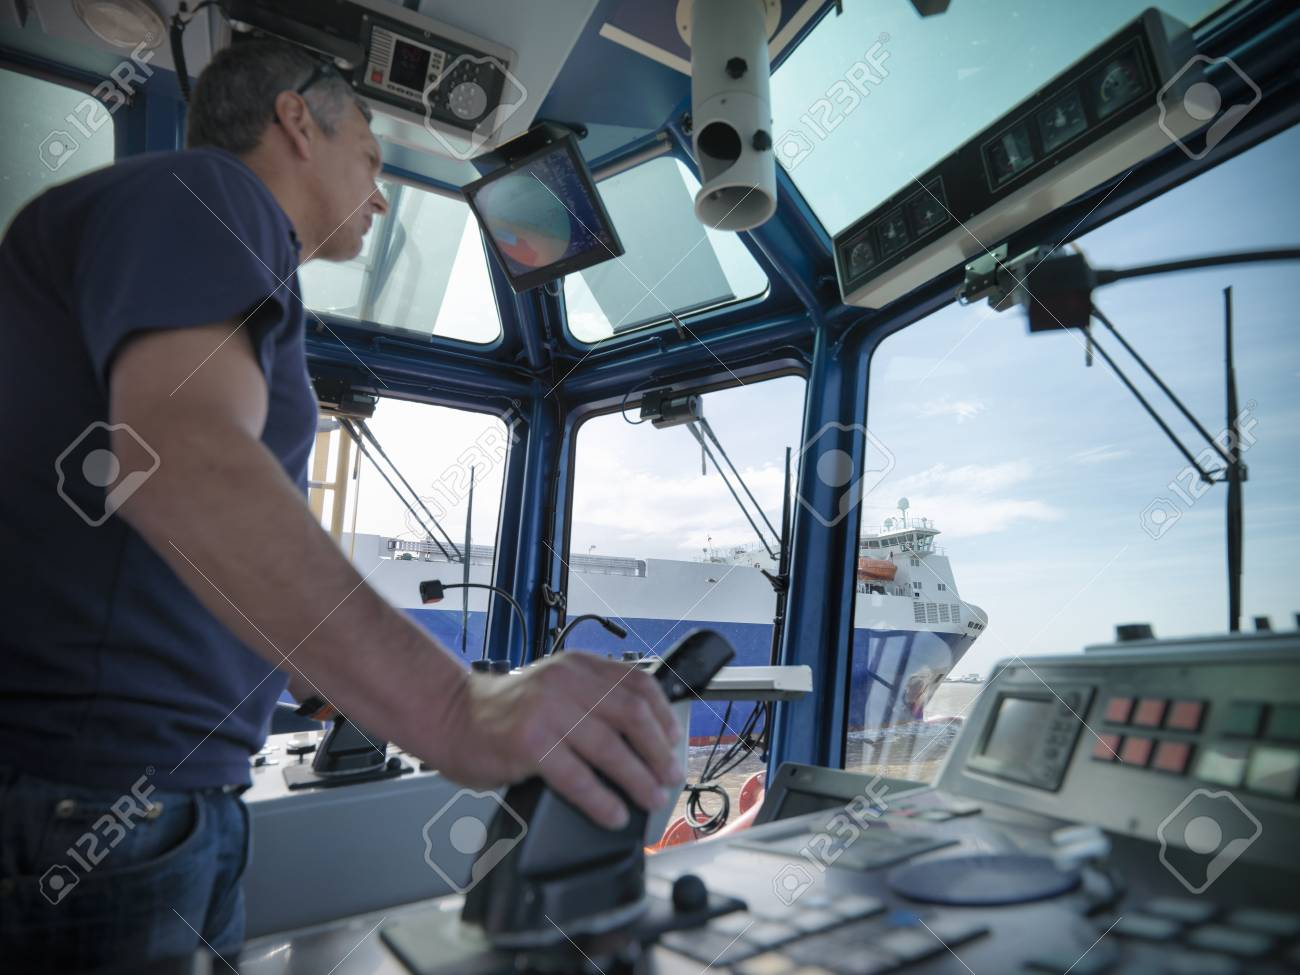 Tugboat captain steering in wheelhouse